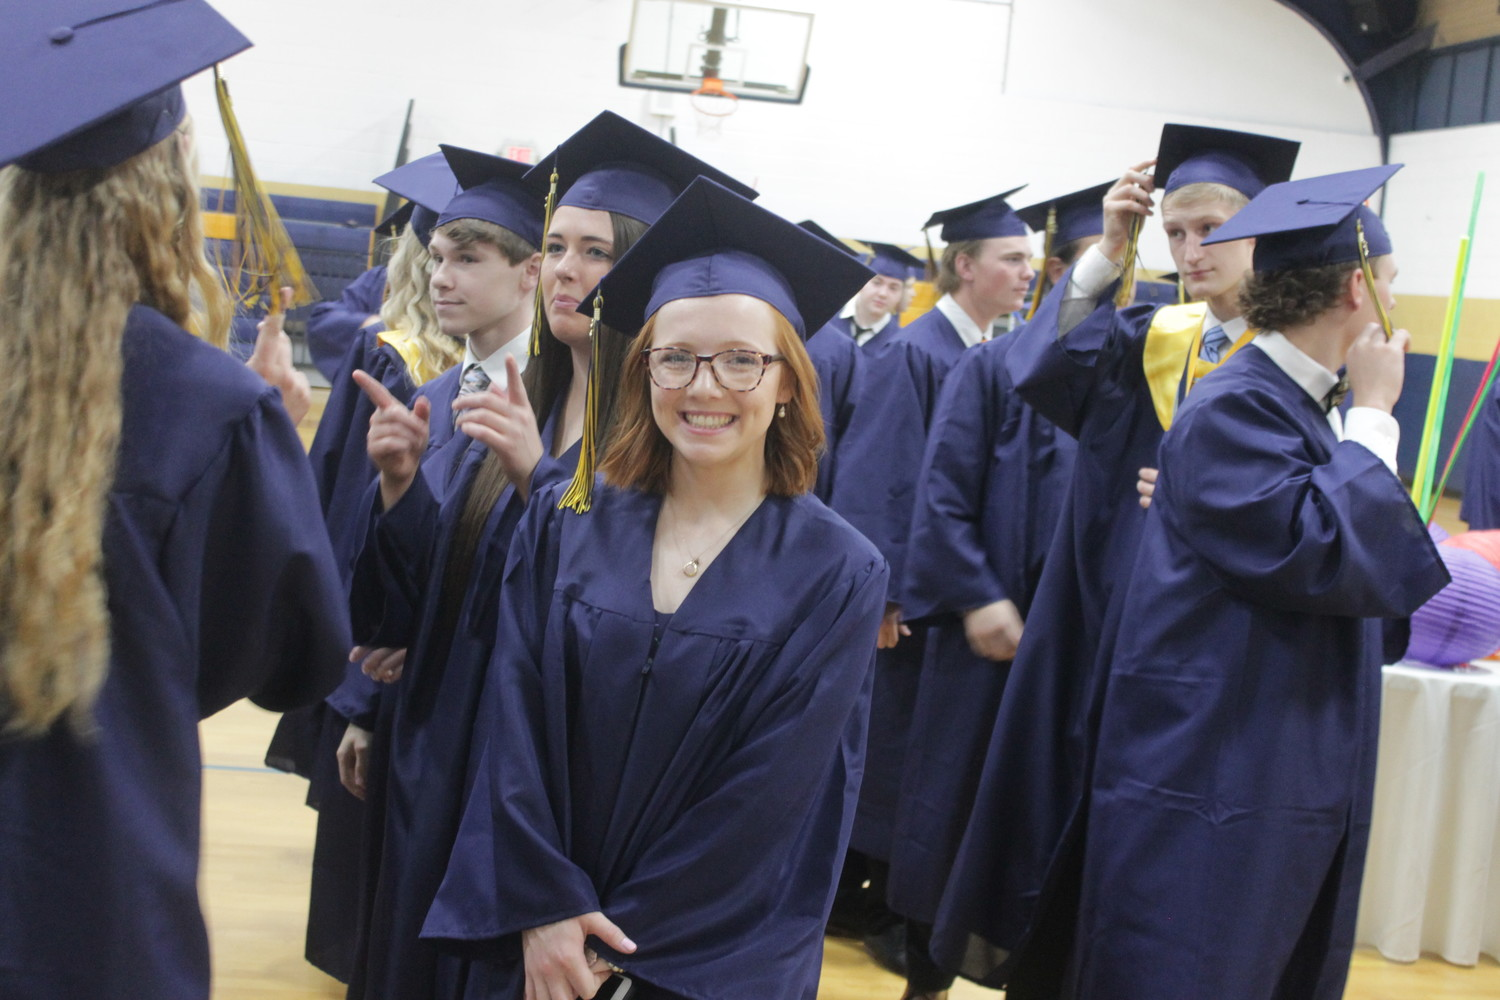 Members of Helias Catholic High School's Class of 2018 line up before the start of their commencement program May 20.